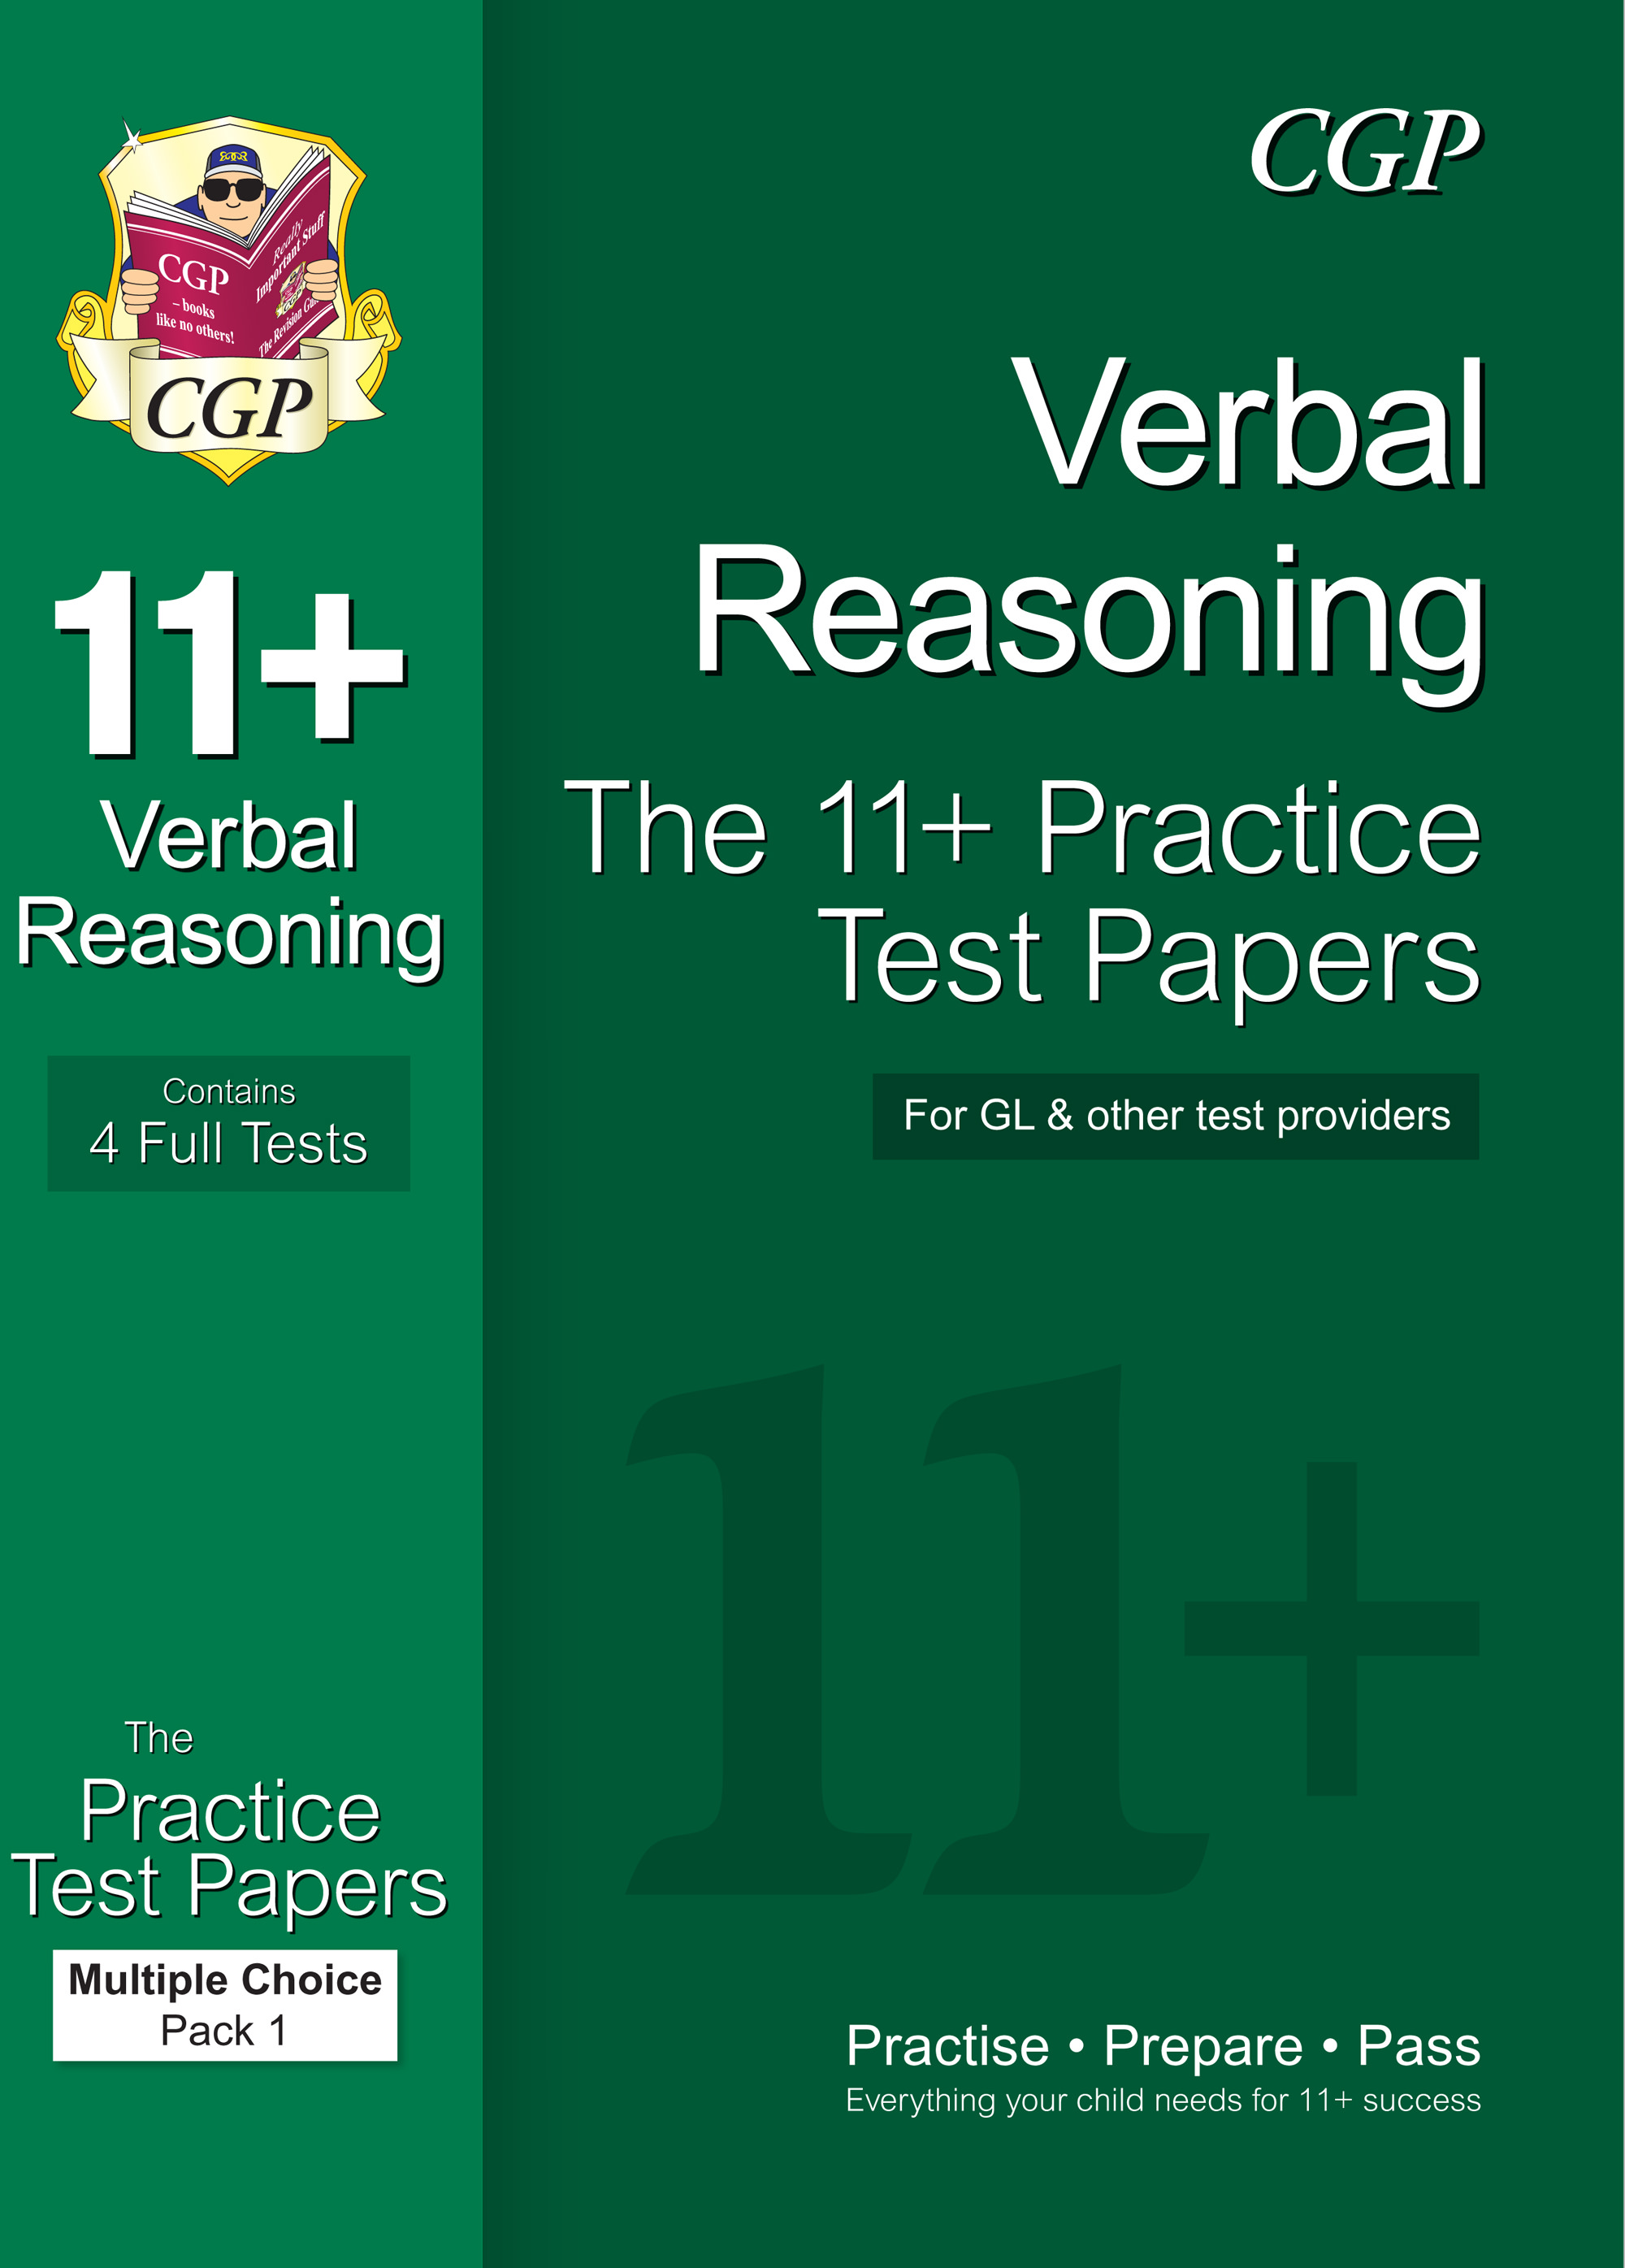 VHTE1 - 11+ Verbal Reasoning Practice Papers: Multiple Choice - Pack 1 (for GL & Other Test Provider